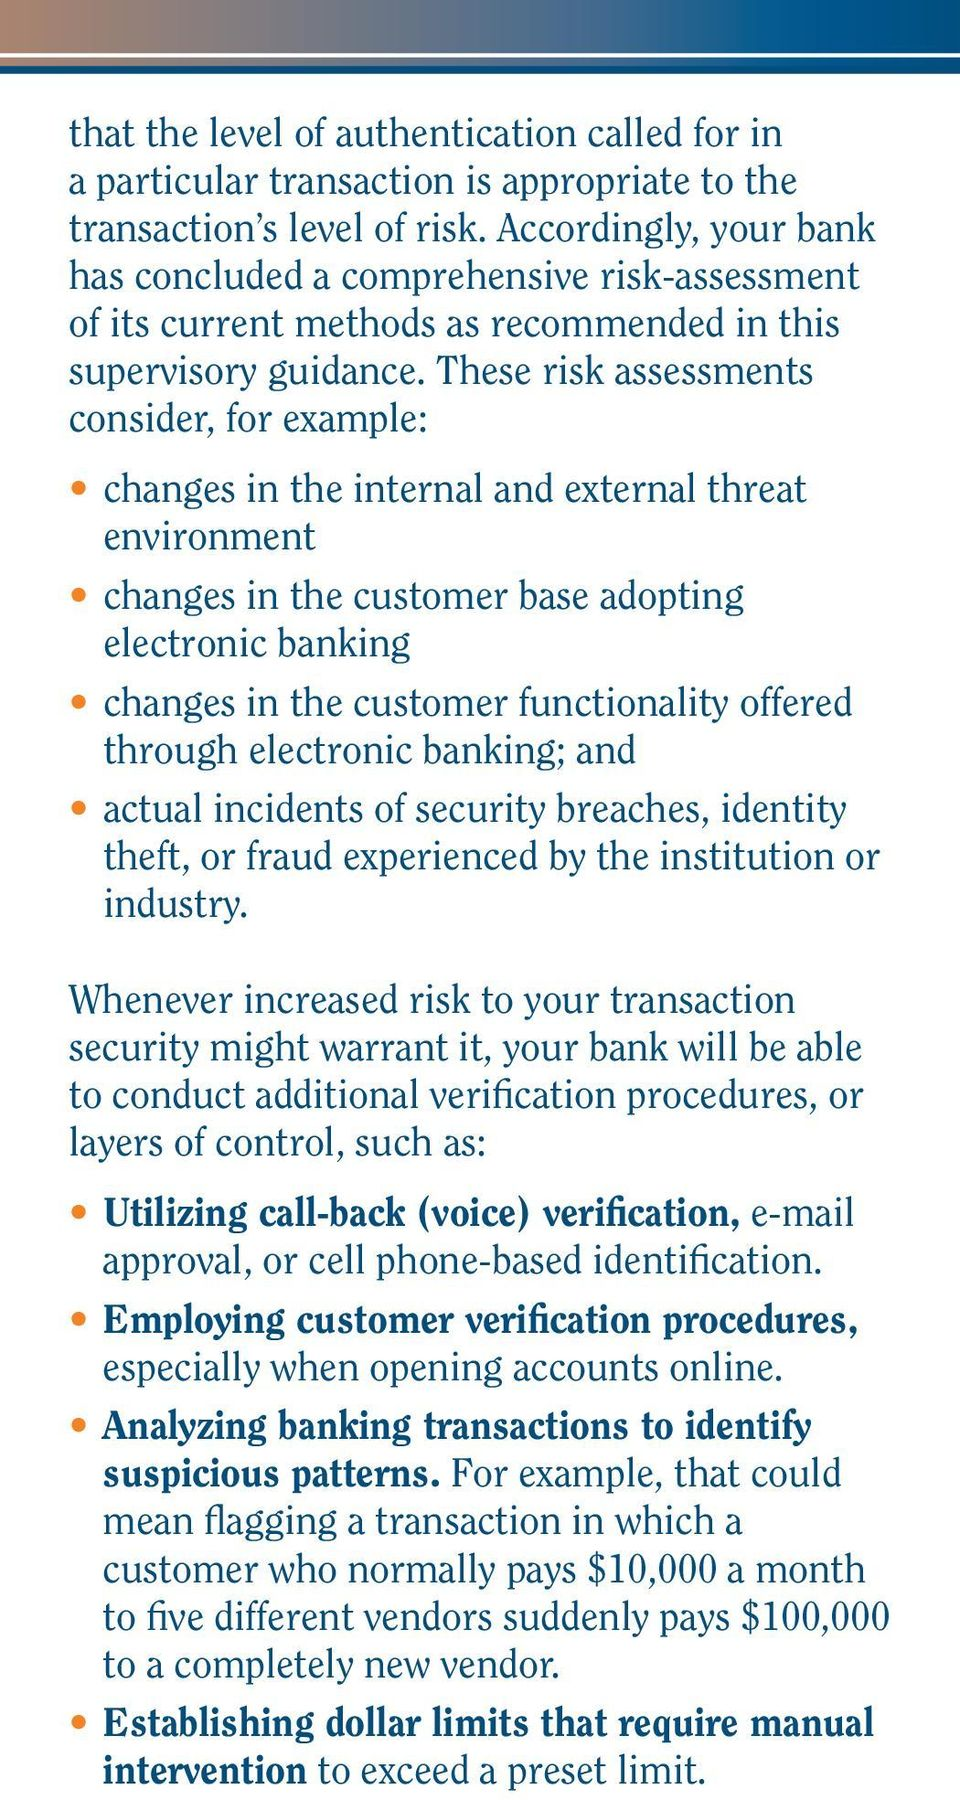 These risk assessments consider, for example: changes in the internal and external threat environment changes in the customer base adopting electronic banking changes in the customer functionality